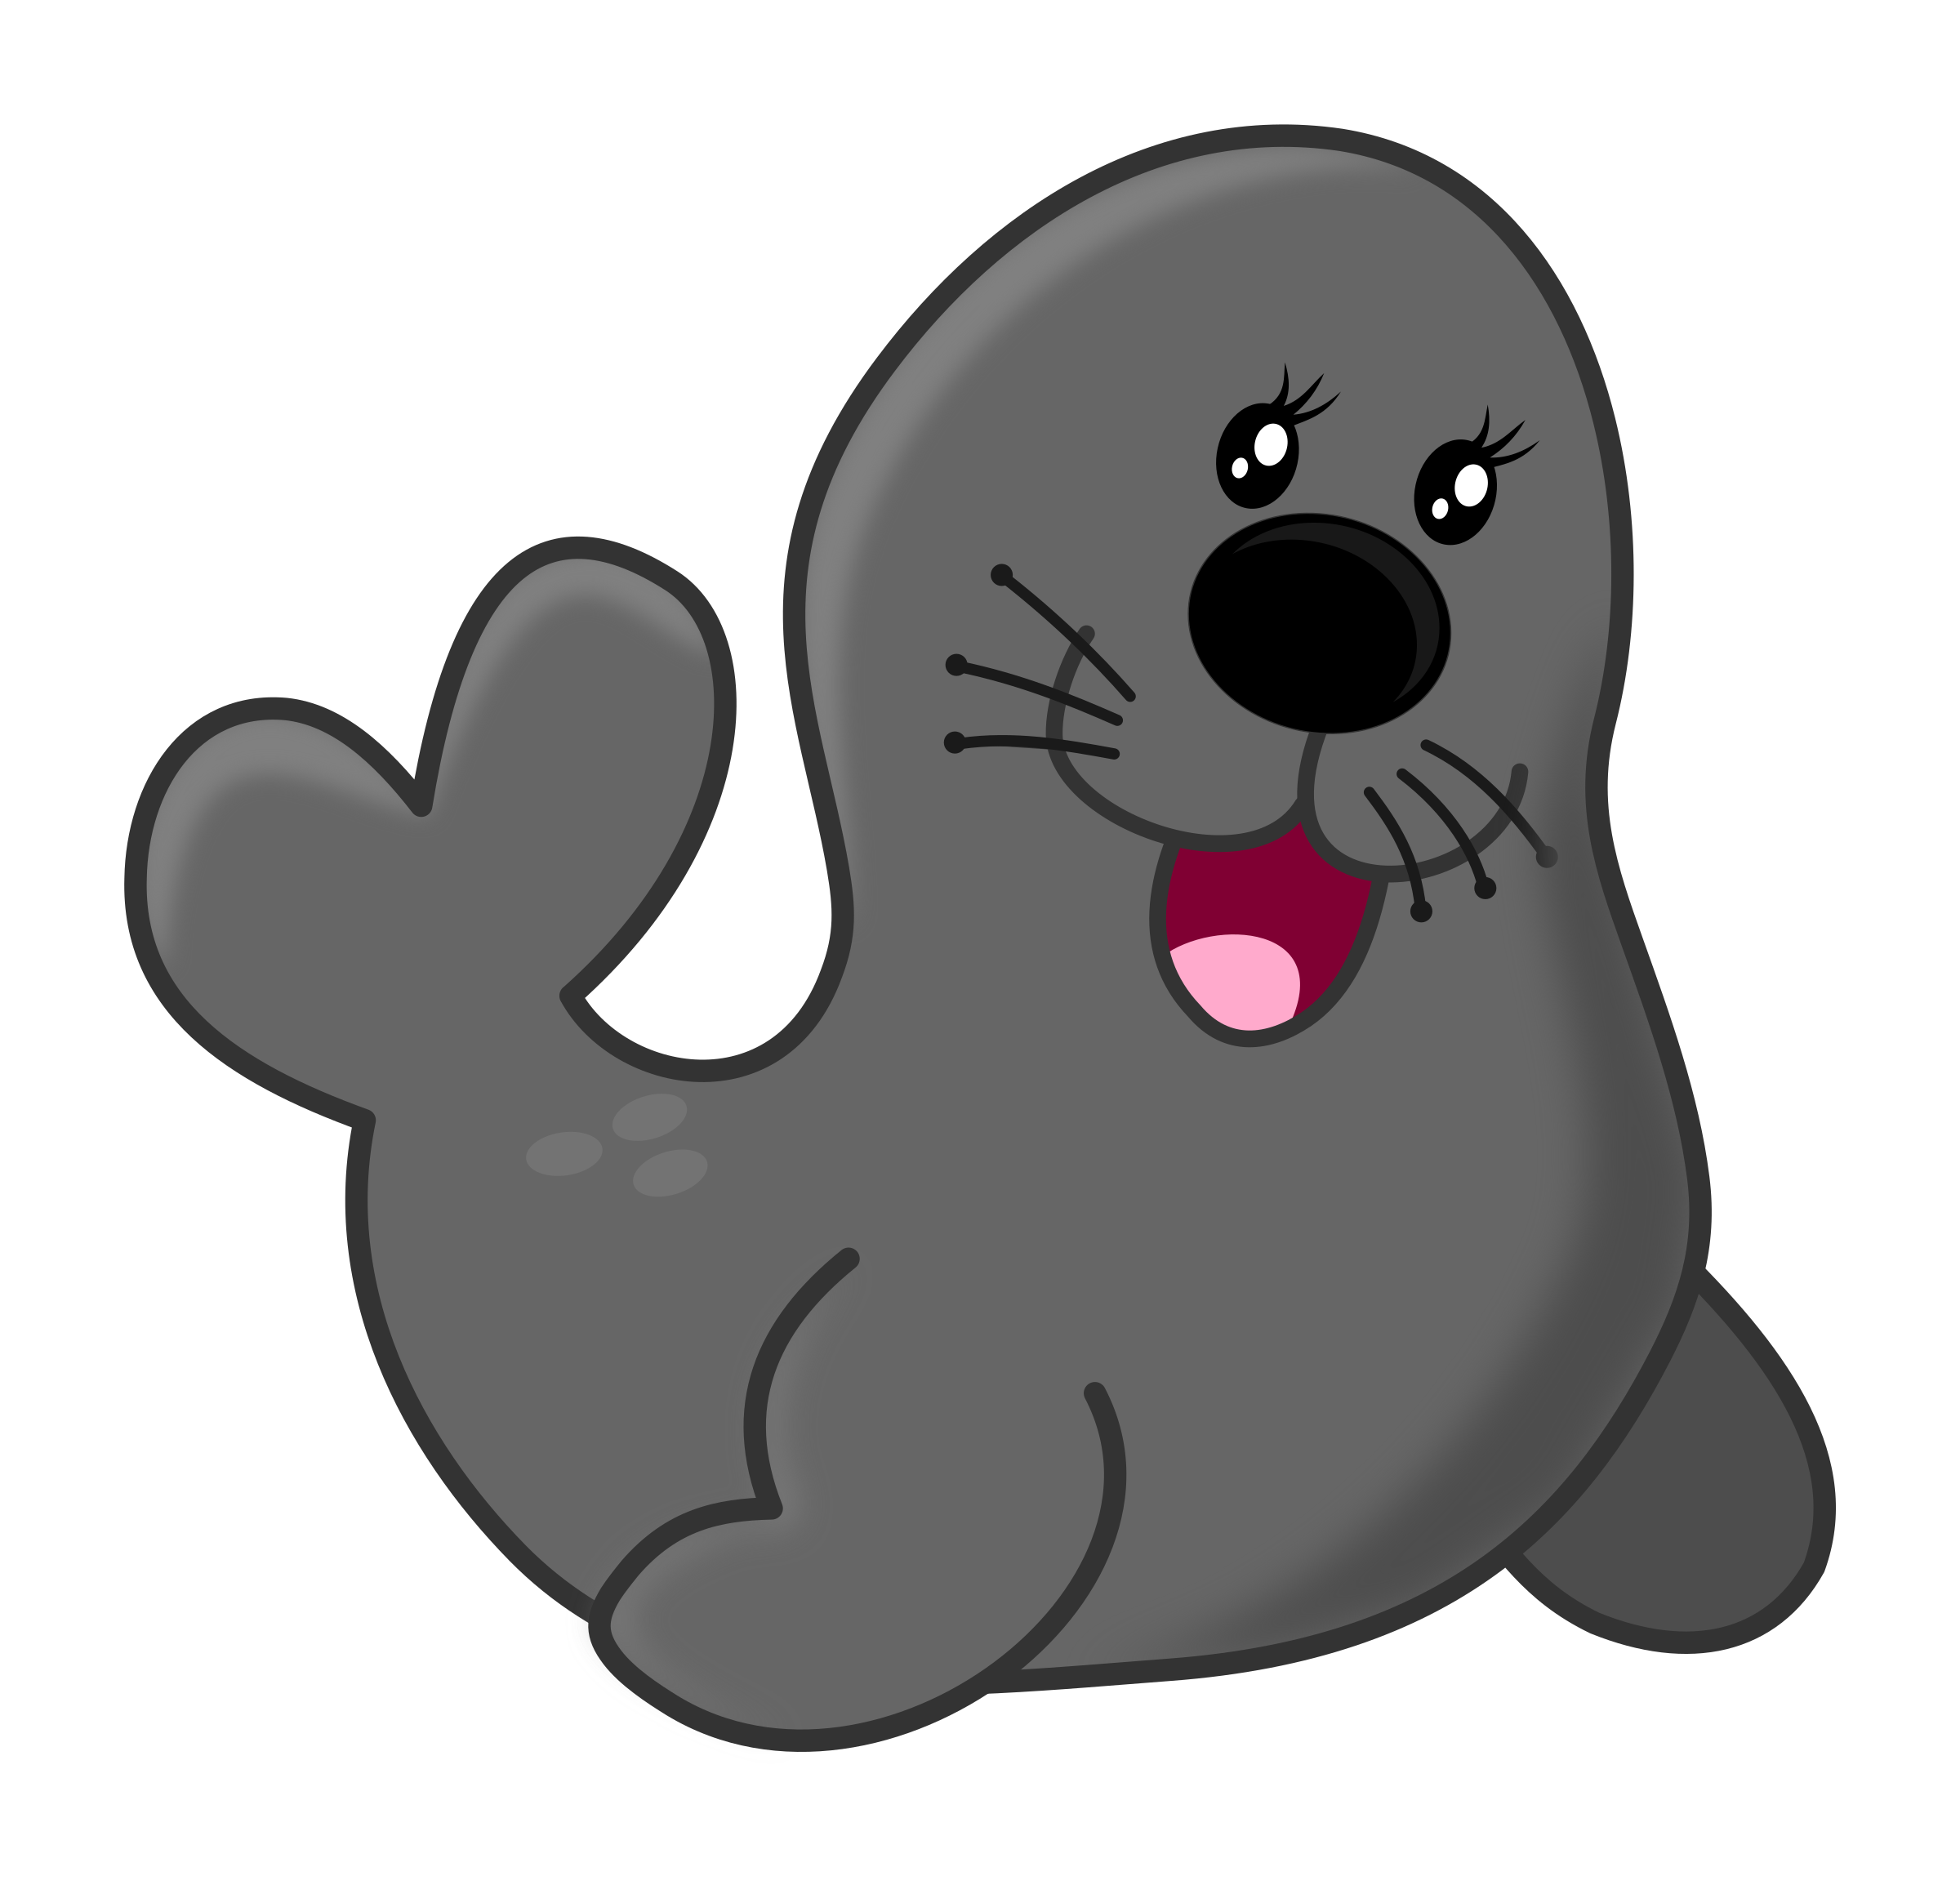 Seal images clipart picture free stock Cartoon Grey Seal Vector Clipart image - Free stock photo ... picture free stock